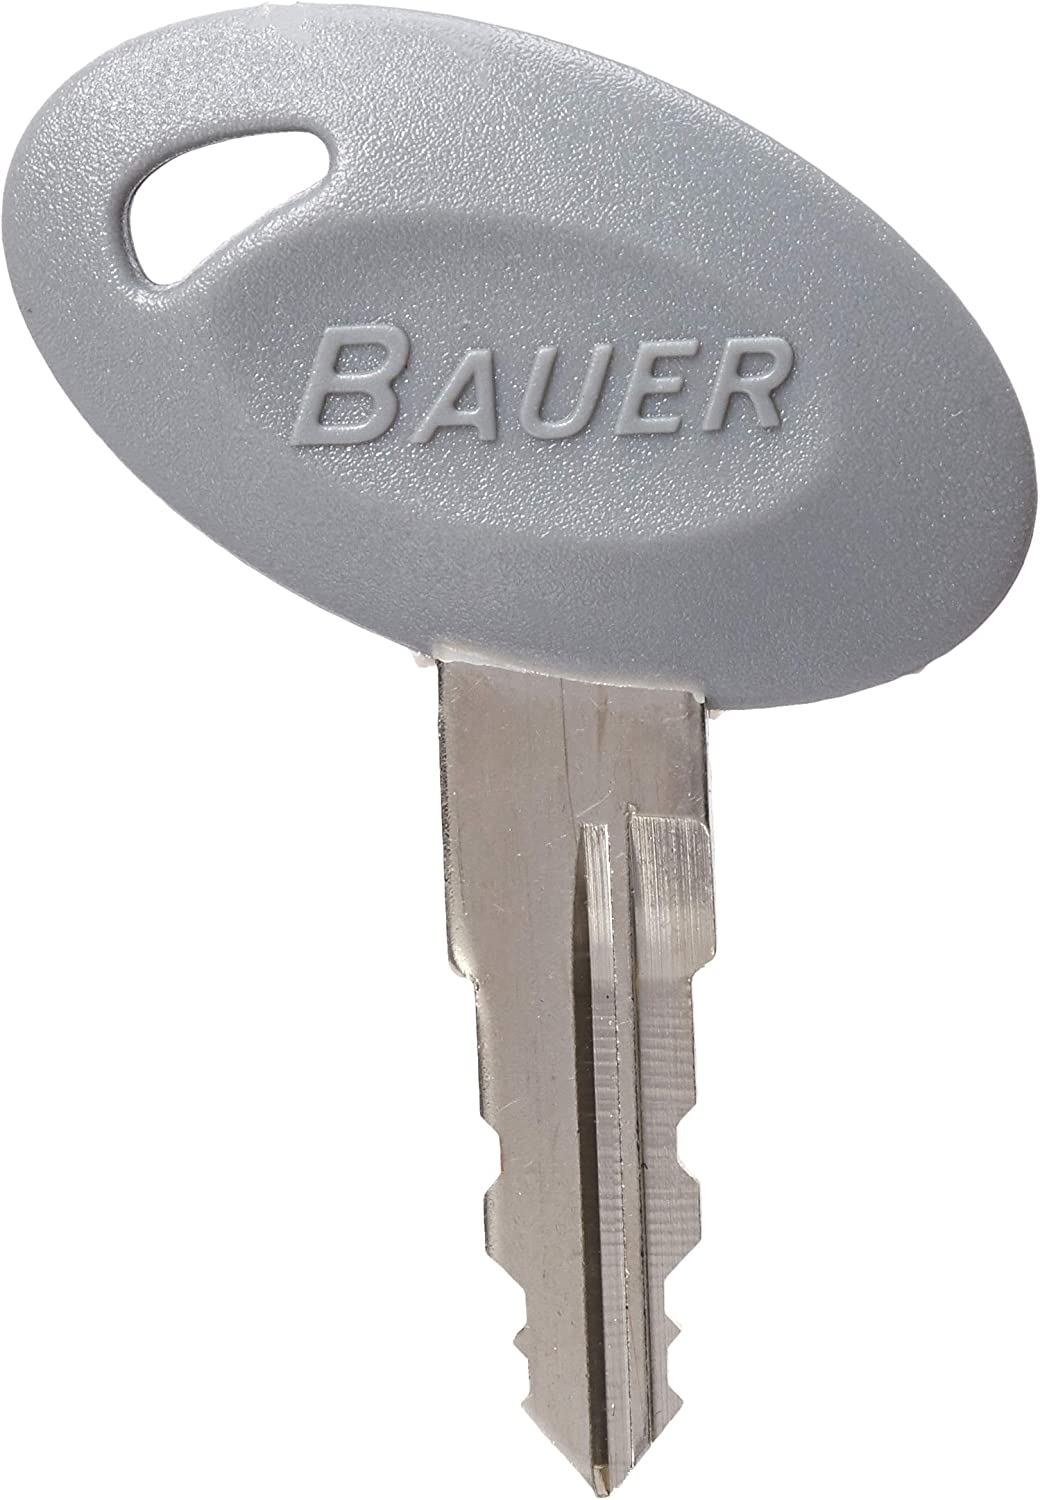 AP Products 013-689736 Bauer Repl Key #736 5 Pack